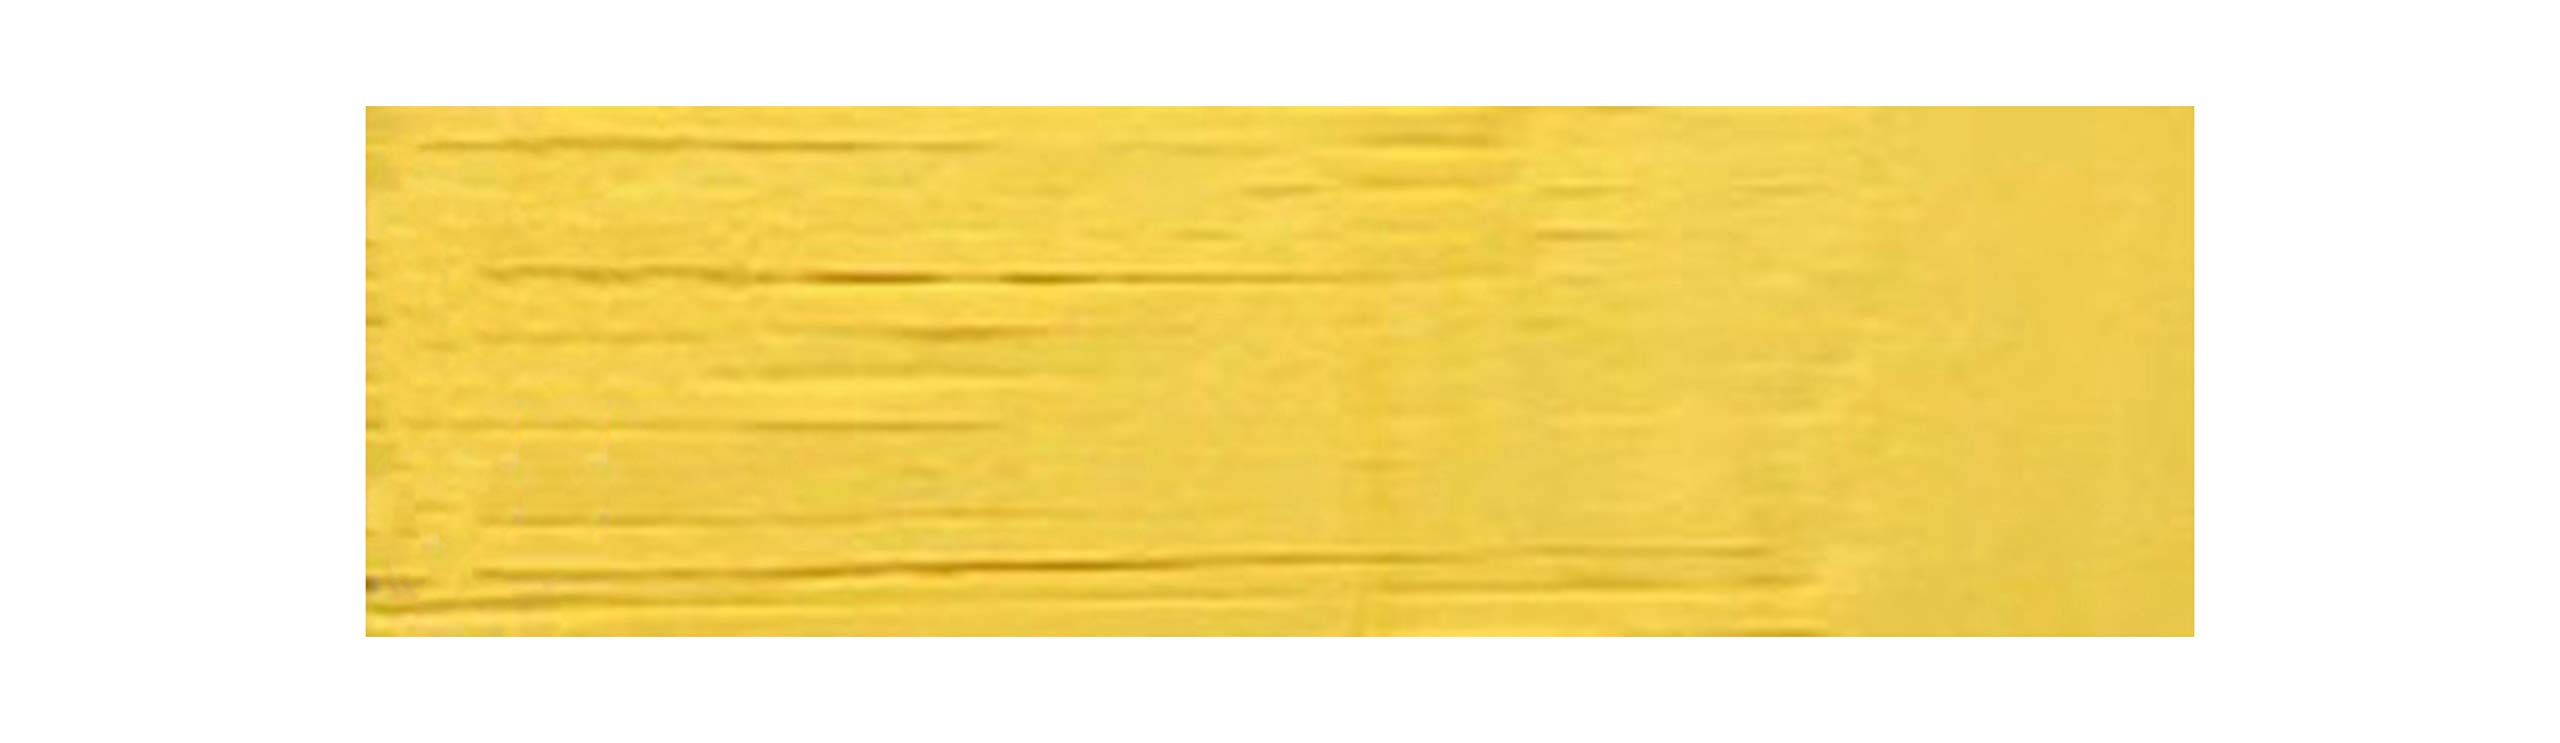 meiguiyuan 100pcs/lot 2535cm,1235cm, 2525cm Tissue Tassel Garlands Paper Garland Banners DIY Kits,Yellow,12cm Wide 35cm Long